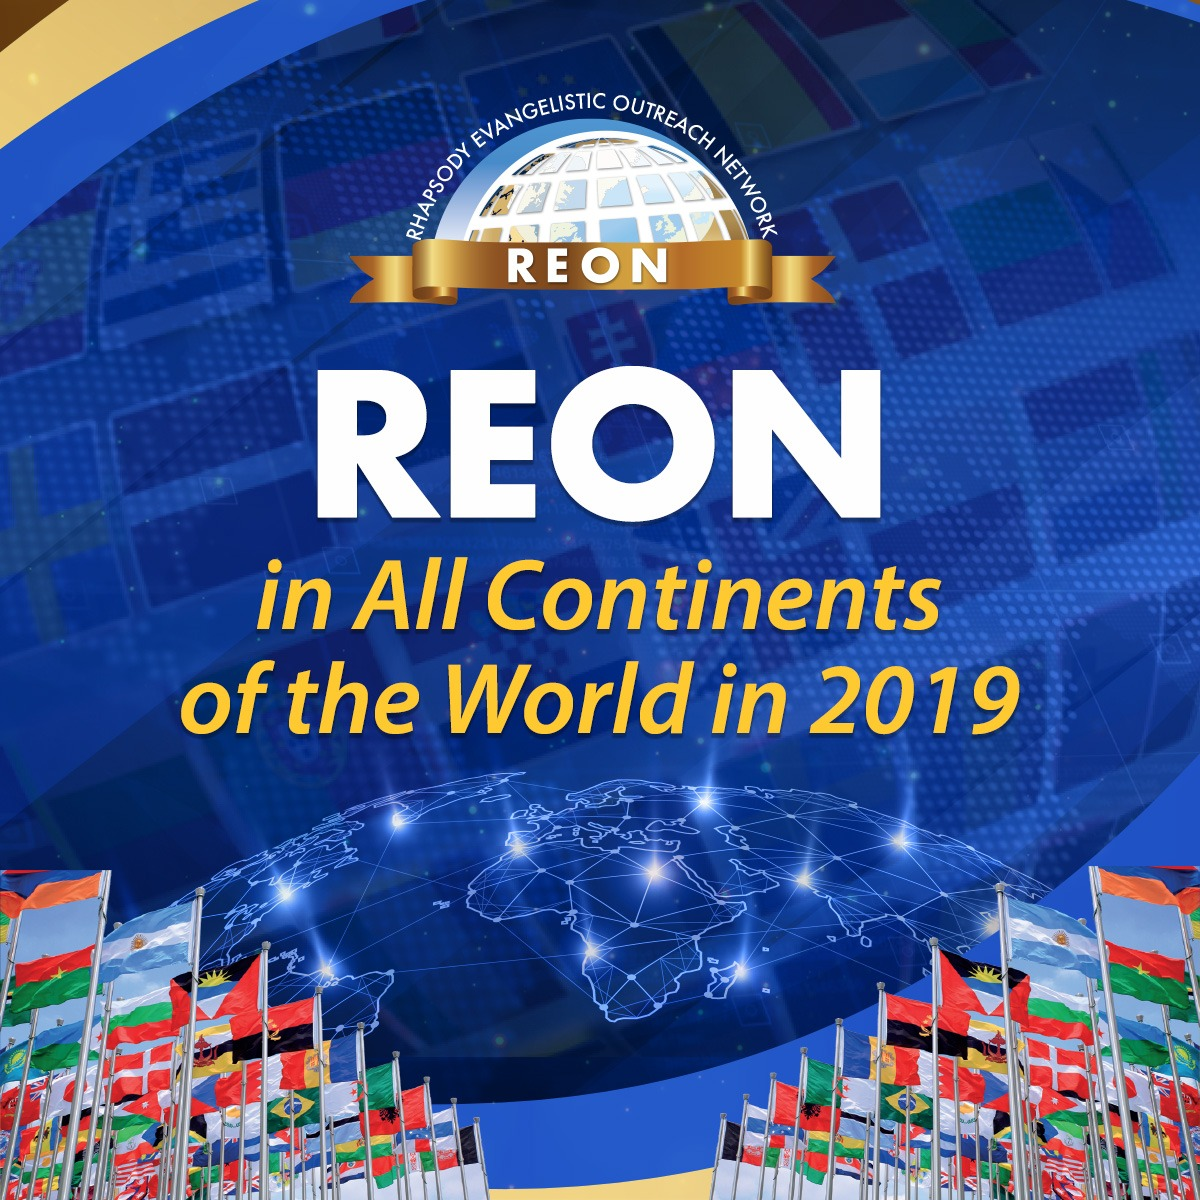 #reoncitywideconference @ #SouthAmerica 🌎 #reonis